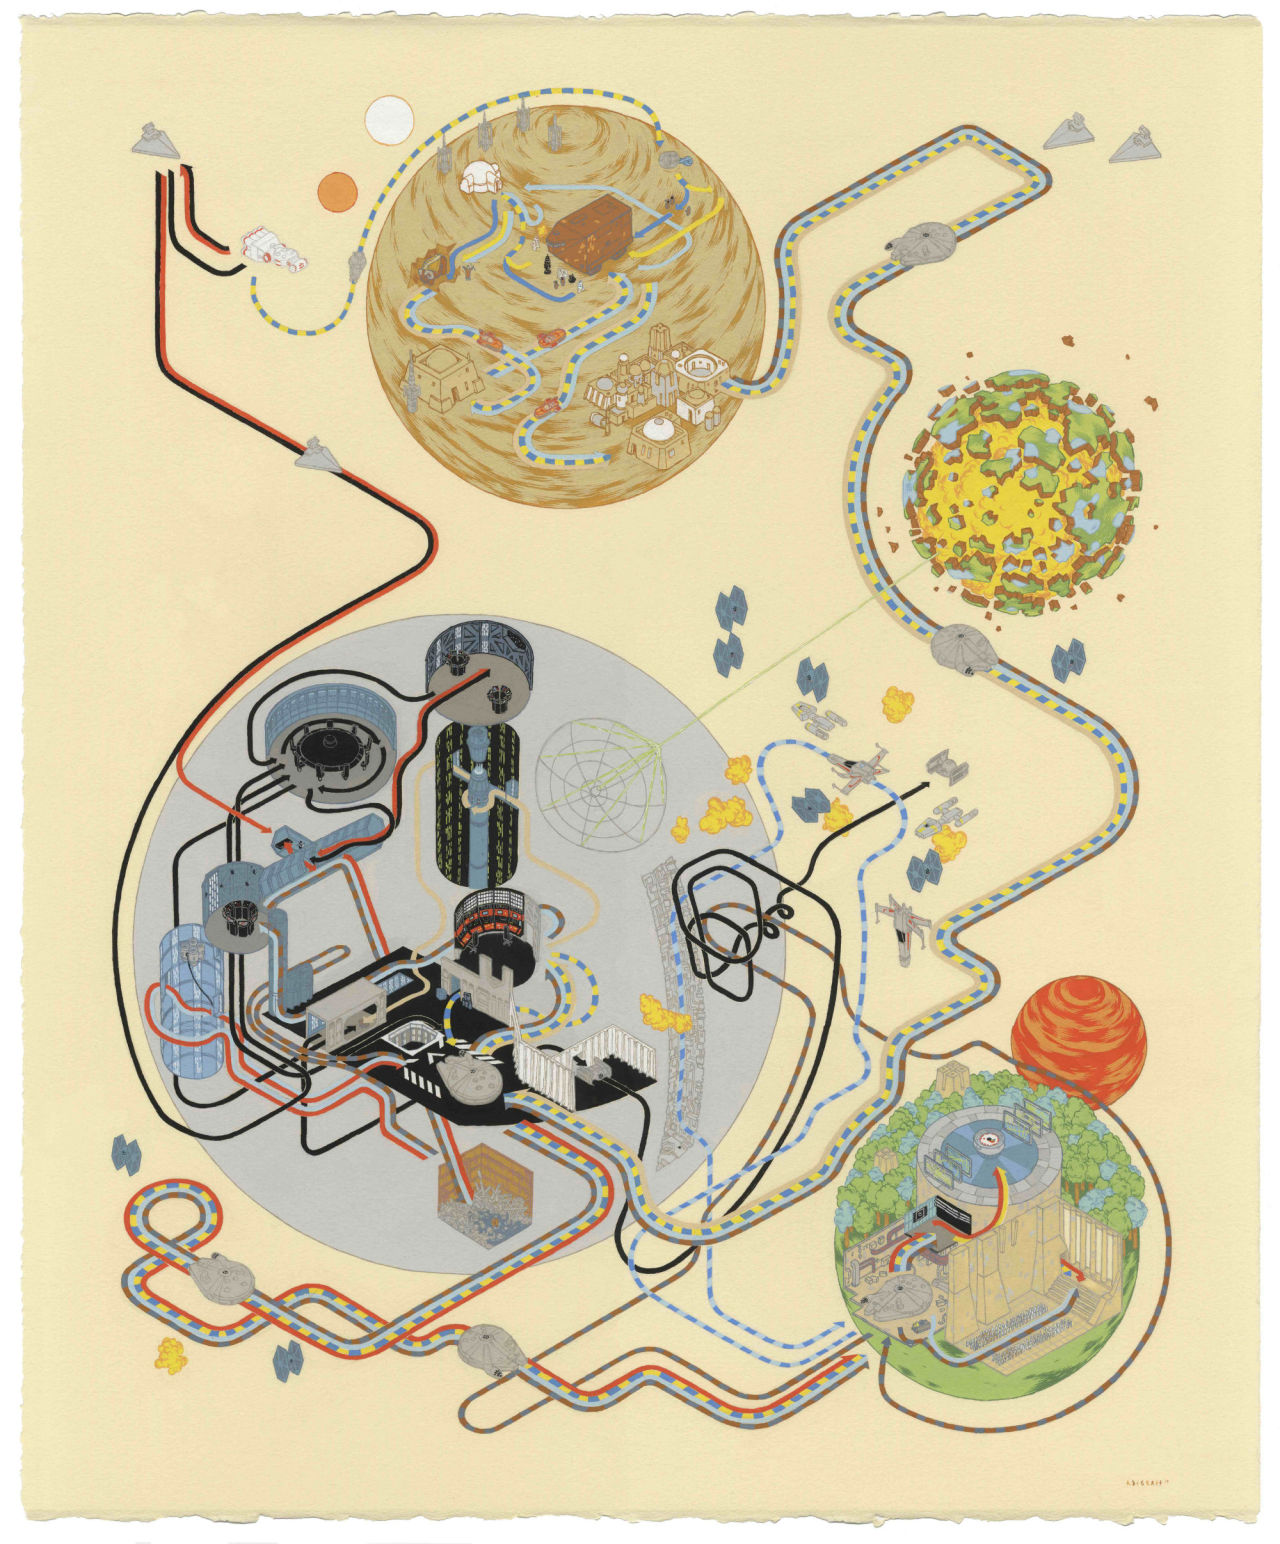 Star Wars Cartography: From Tatooine to the Death Star by Andrew DeGraff